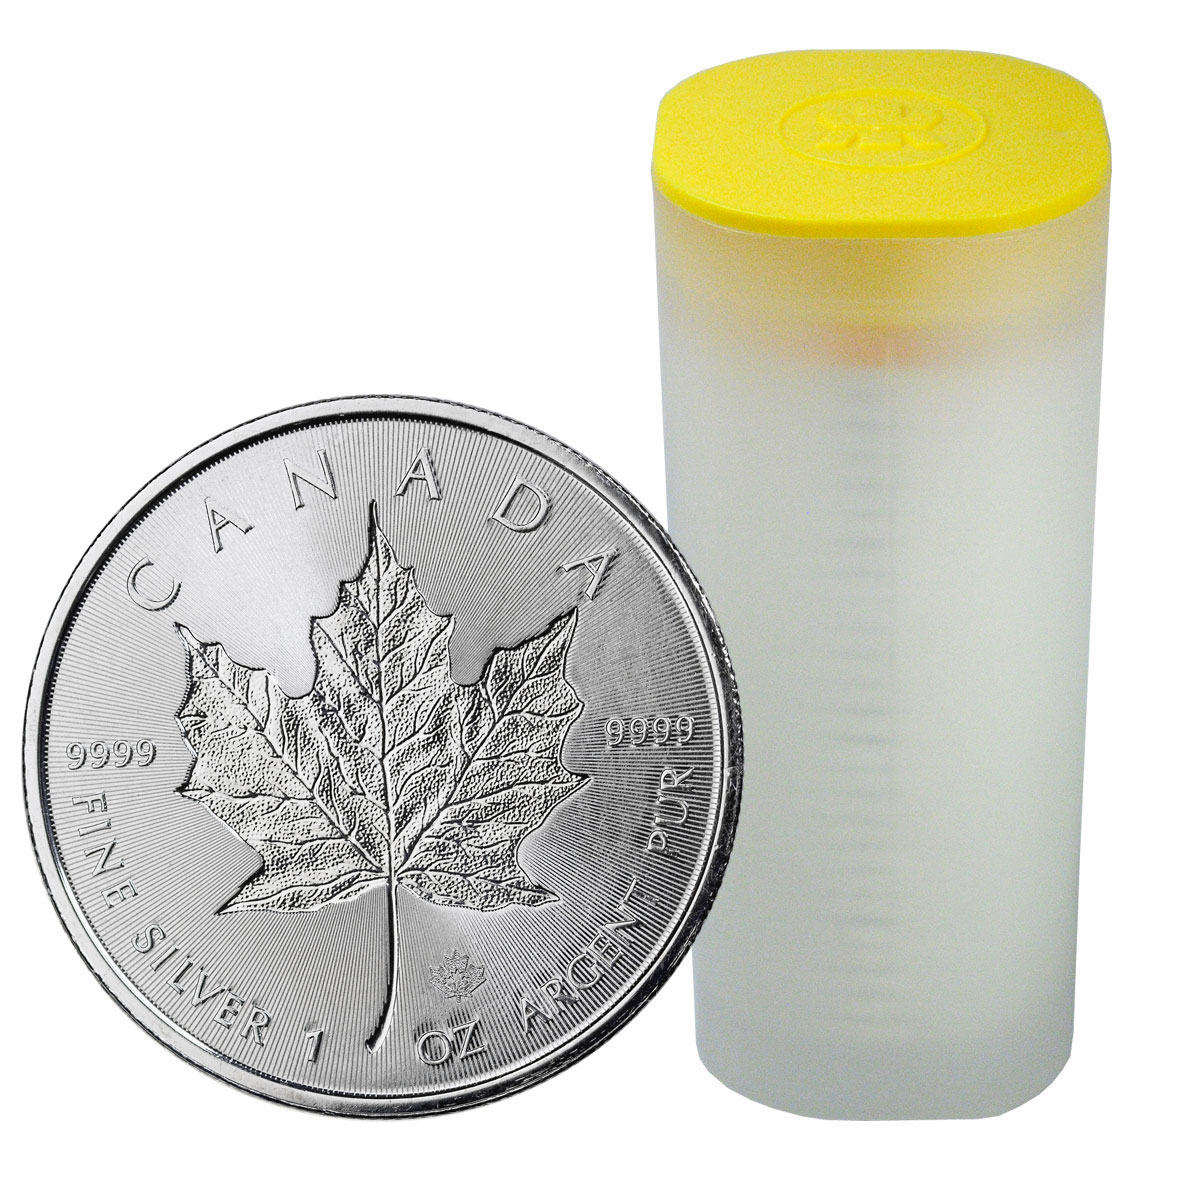 Roll of 25 - 2018 Canada 1 oz Silver Maple Leaf - Incuse $5 Coins GEM BU